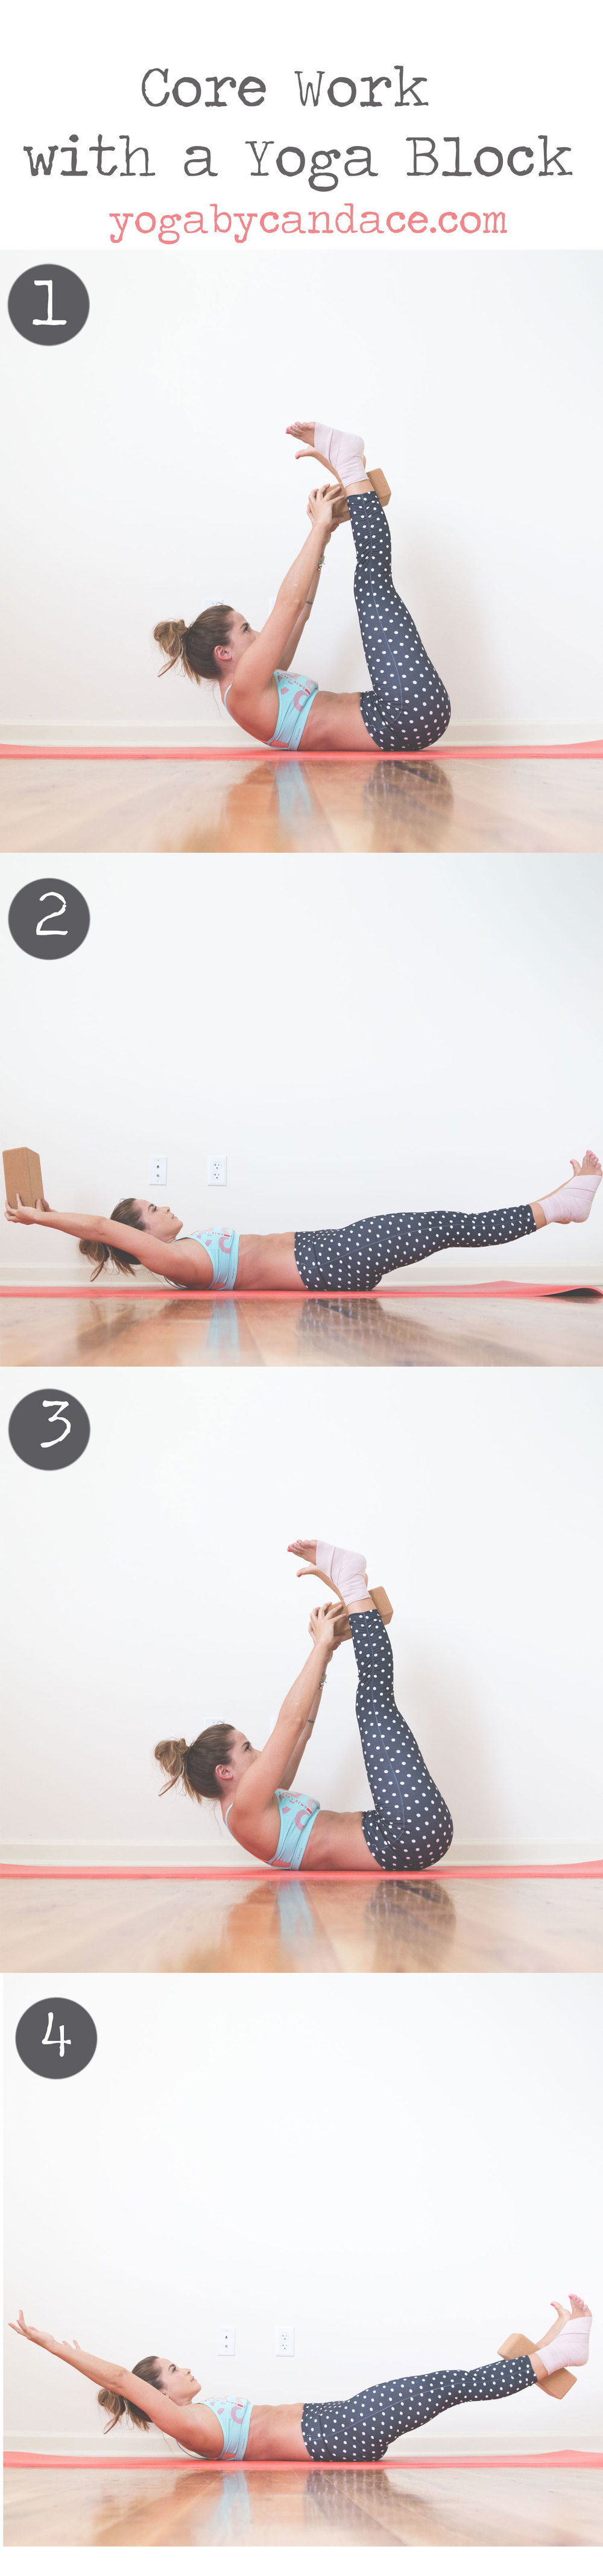 yoga core workout